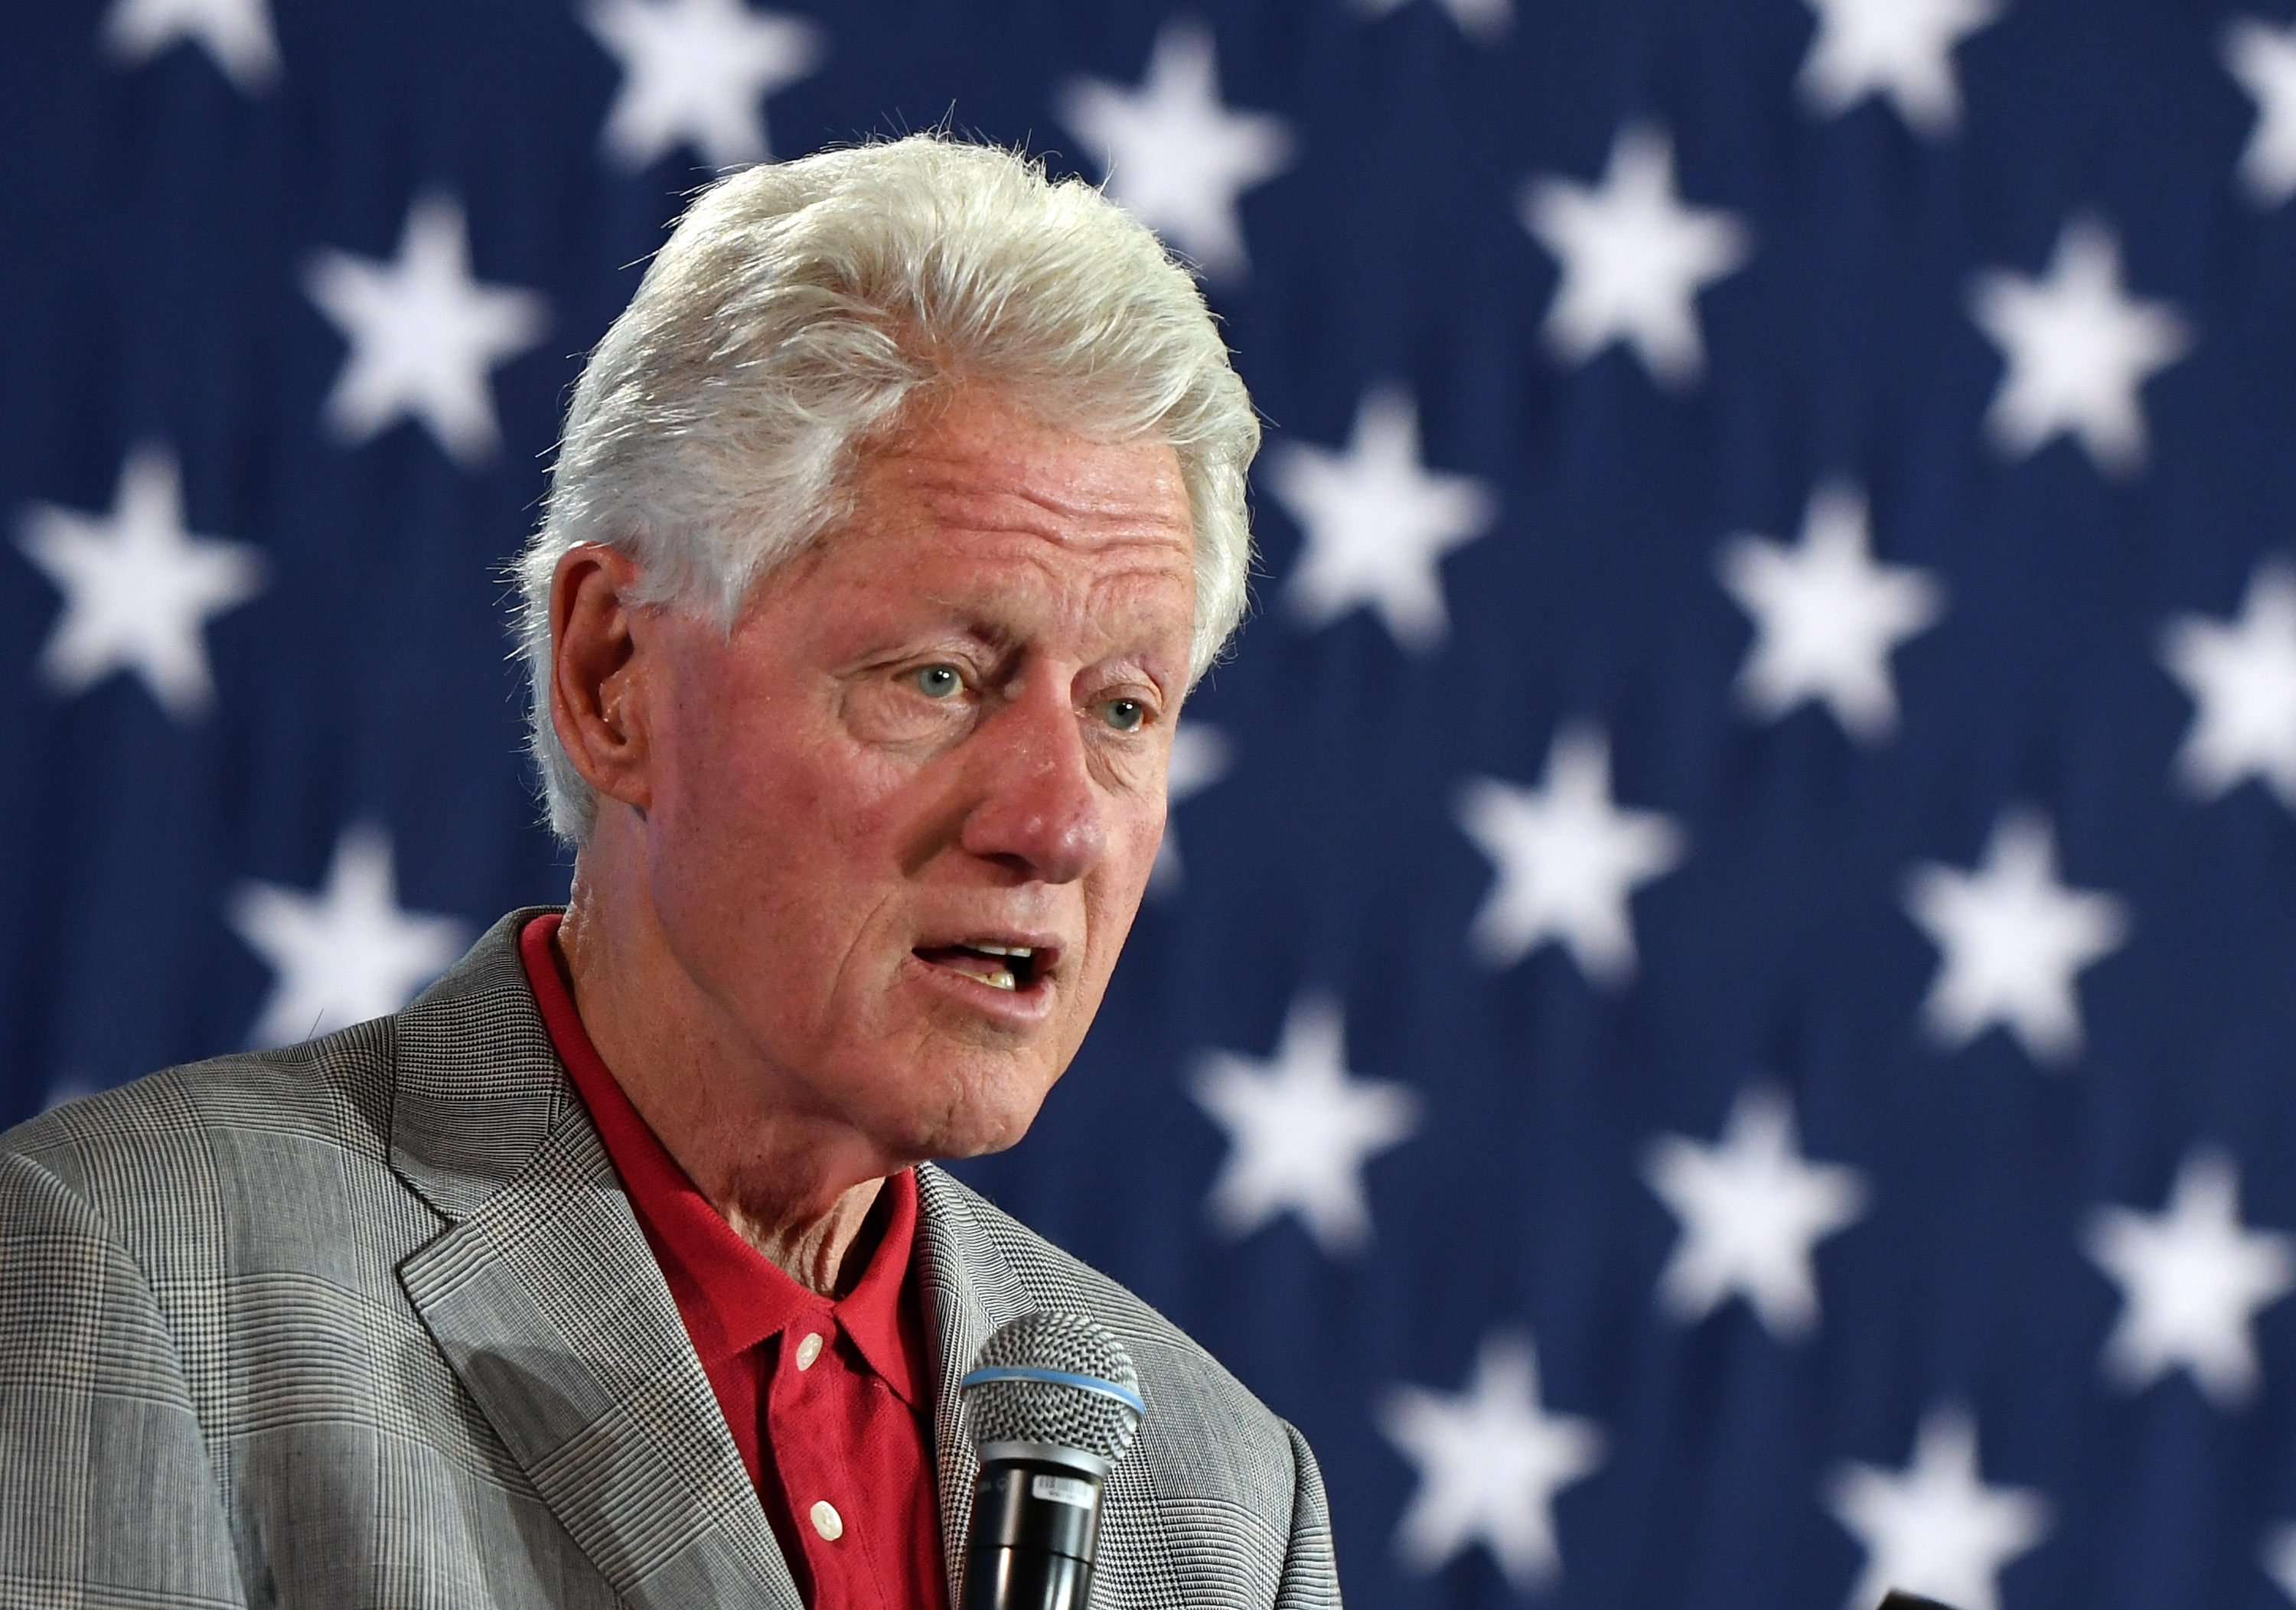 Former U.S. President Bill Clinton speaks at a campaign event for Democratic presidential nominee Hillary Clinton at a College of Southern Nevada campus on September 14, 2016 in North Las Vegas, Nevada. Ethan Miller—Getty Images